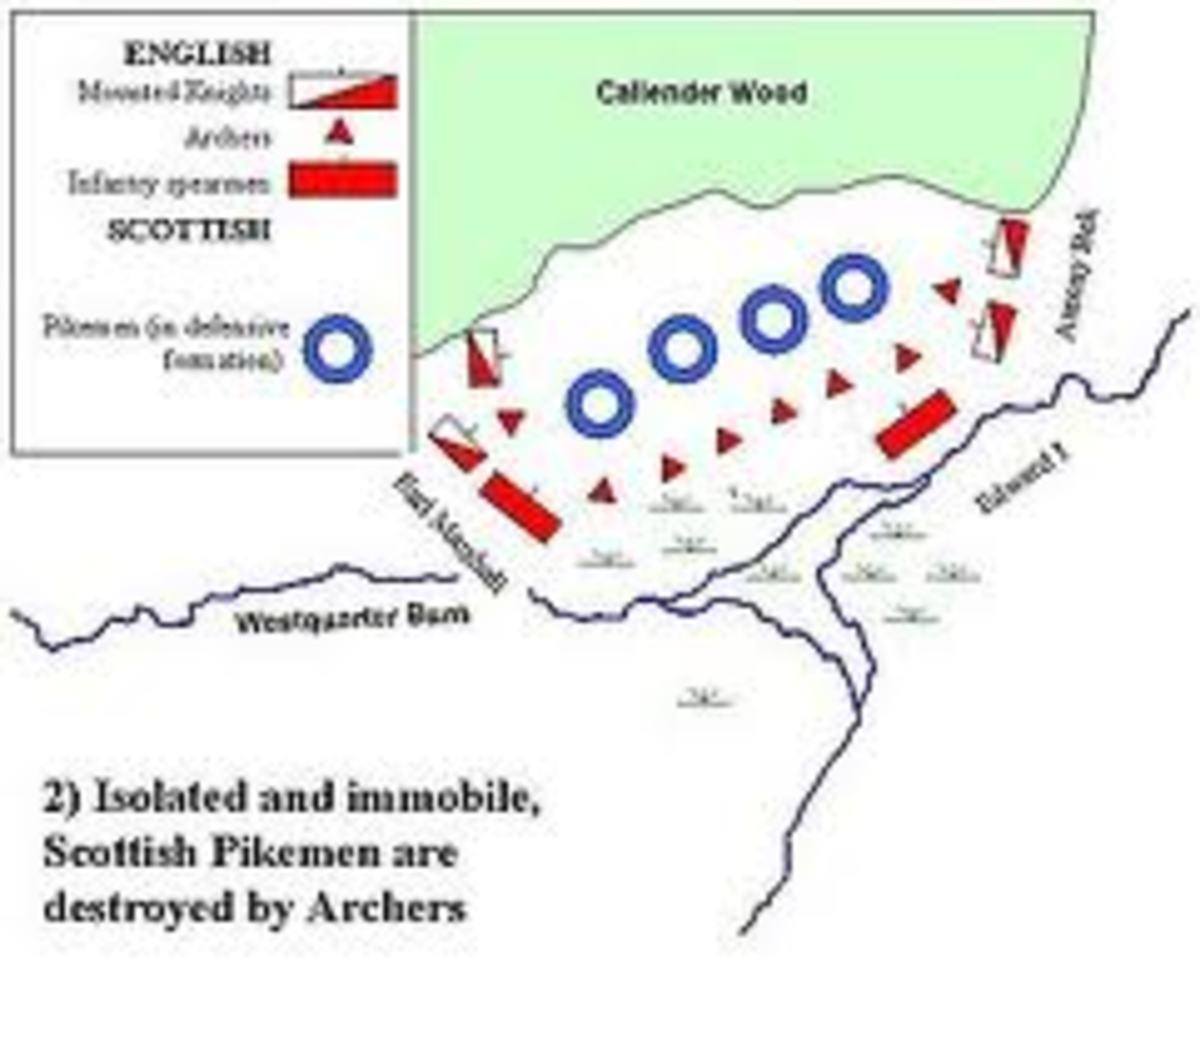 The battle map of Falkirk